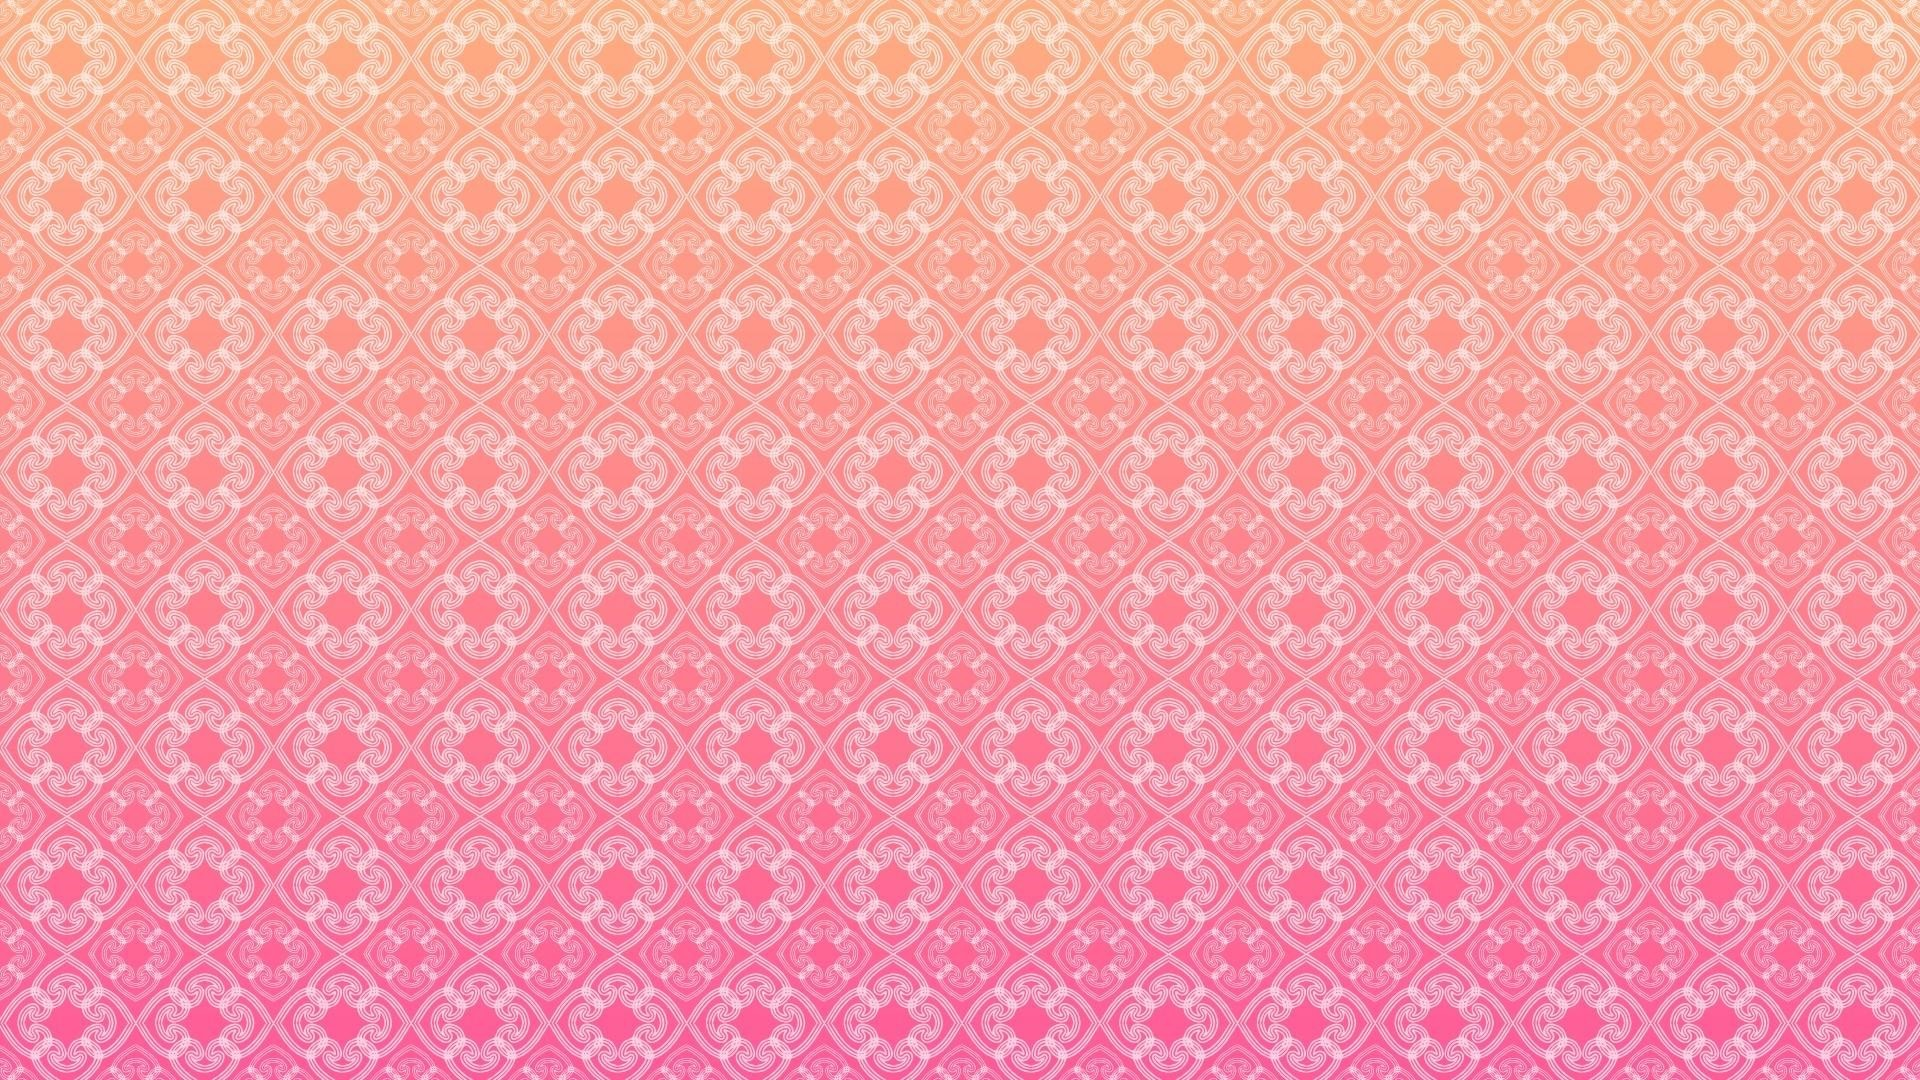 1920x1080 pattern 1 - pink and orange (HD wallpaper) by *elideli on deviantART